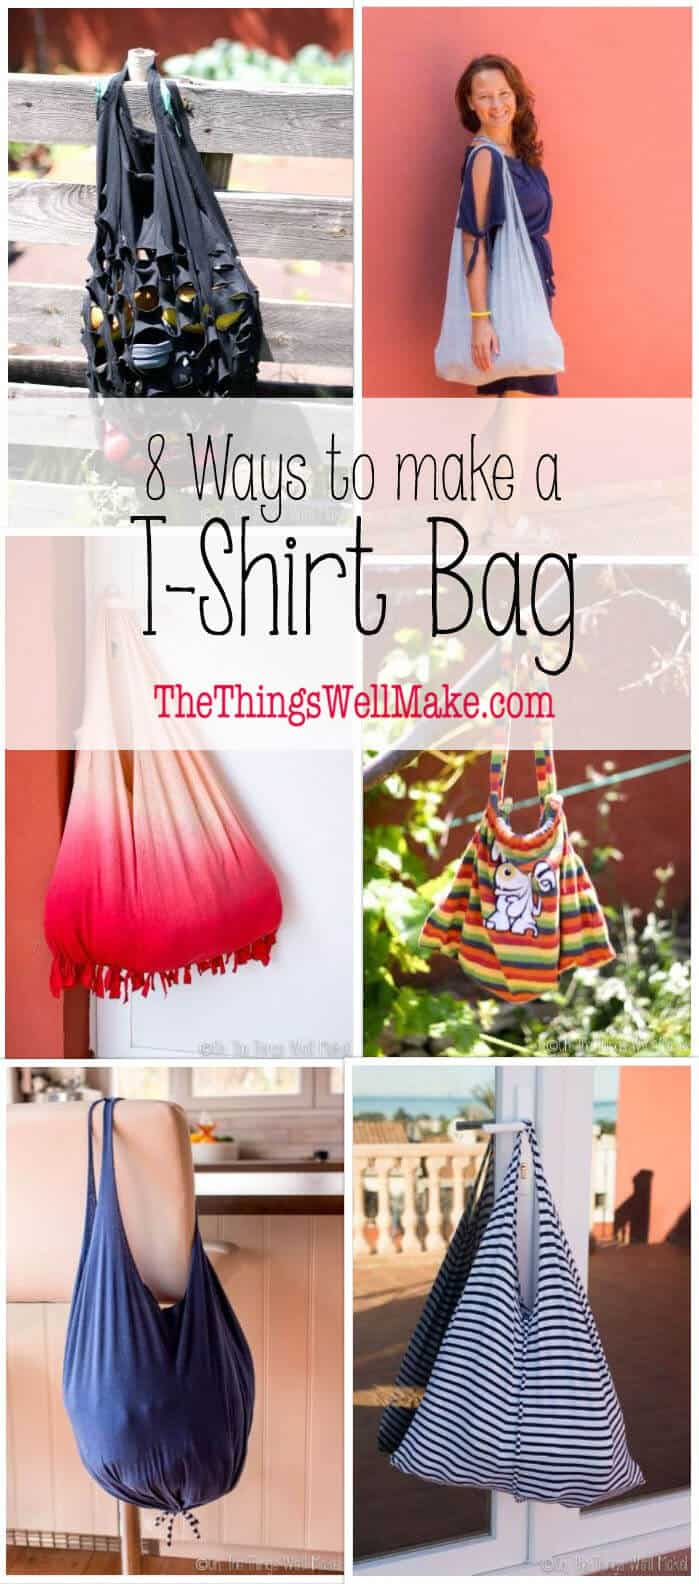 There are lots of ways to make a t-shirt into a bag or backpack. I'll show you eight great ways to do it, and you don't even need to know how to sew for some! #thethingswellmake #miy #tshirt #shoppingbag #backpack #upcycle #recycle #sewing #sewingbag #sewingprojects #nosew #bags #greenliving #greenlivingtips #upcycledclothing #recycledclothing